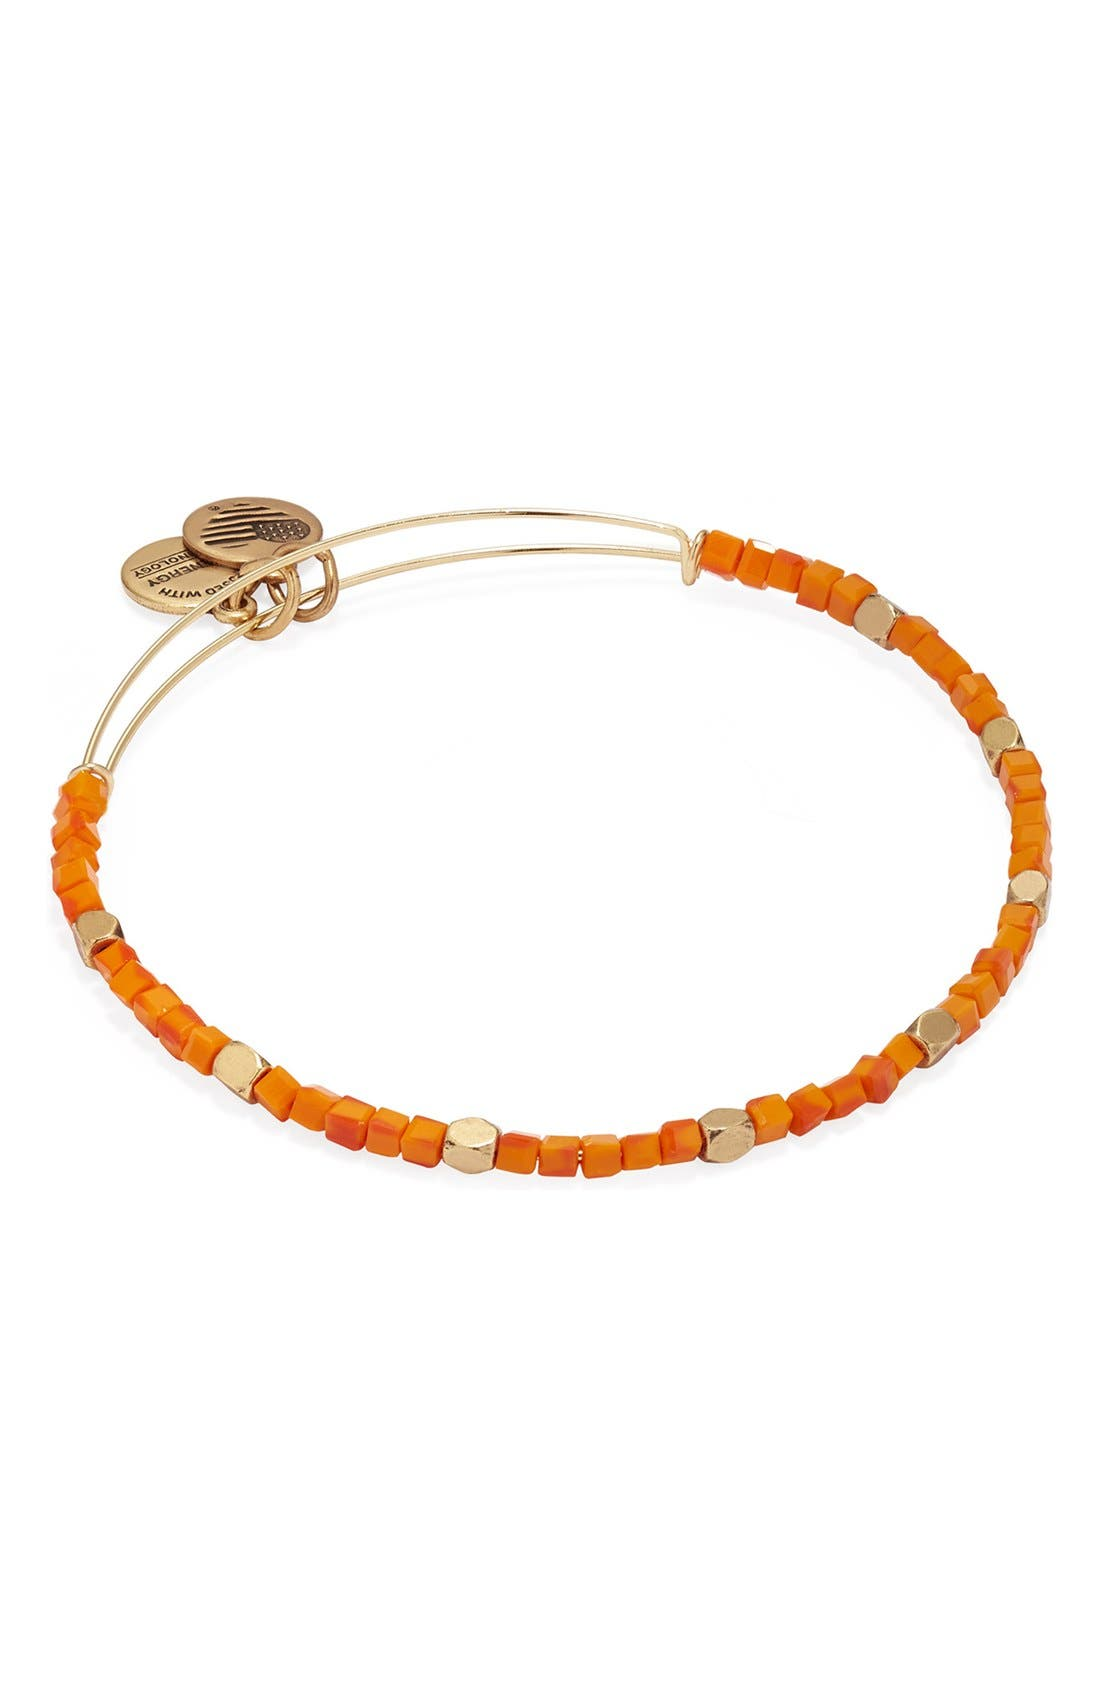 Main Image - Alex and Ani 'Odyssey' Expandable Beaded Bangle